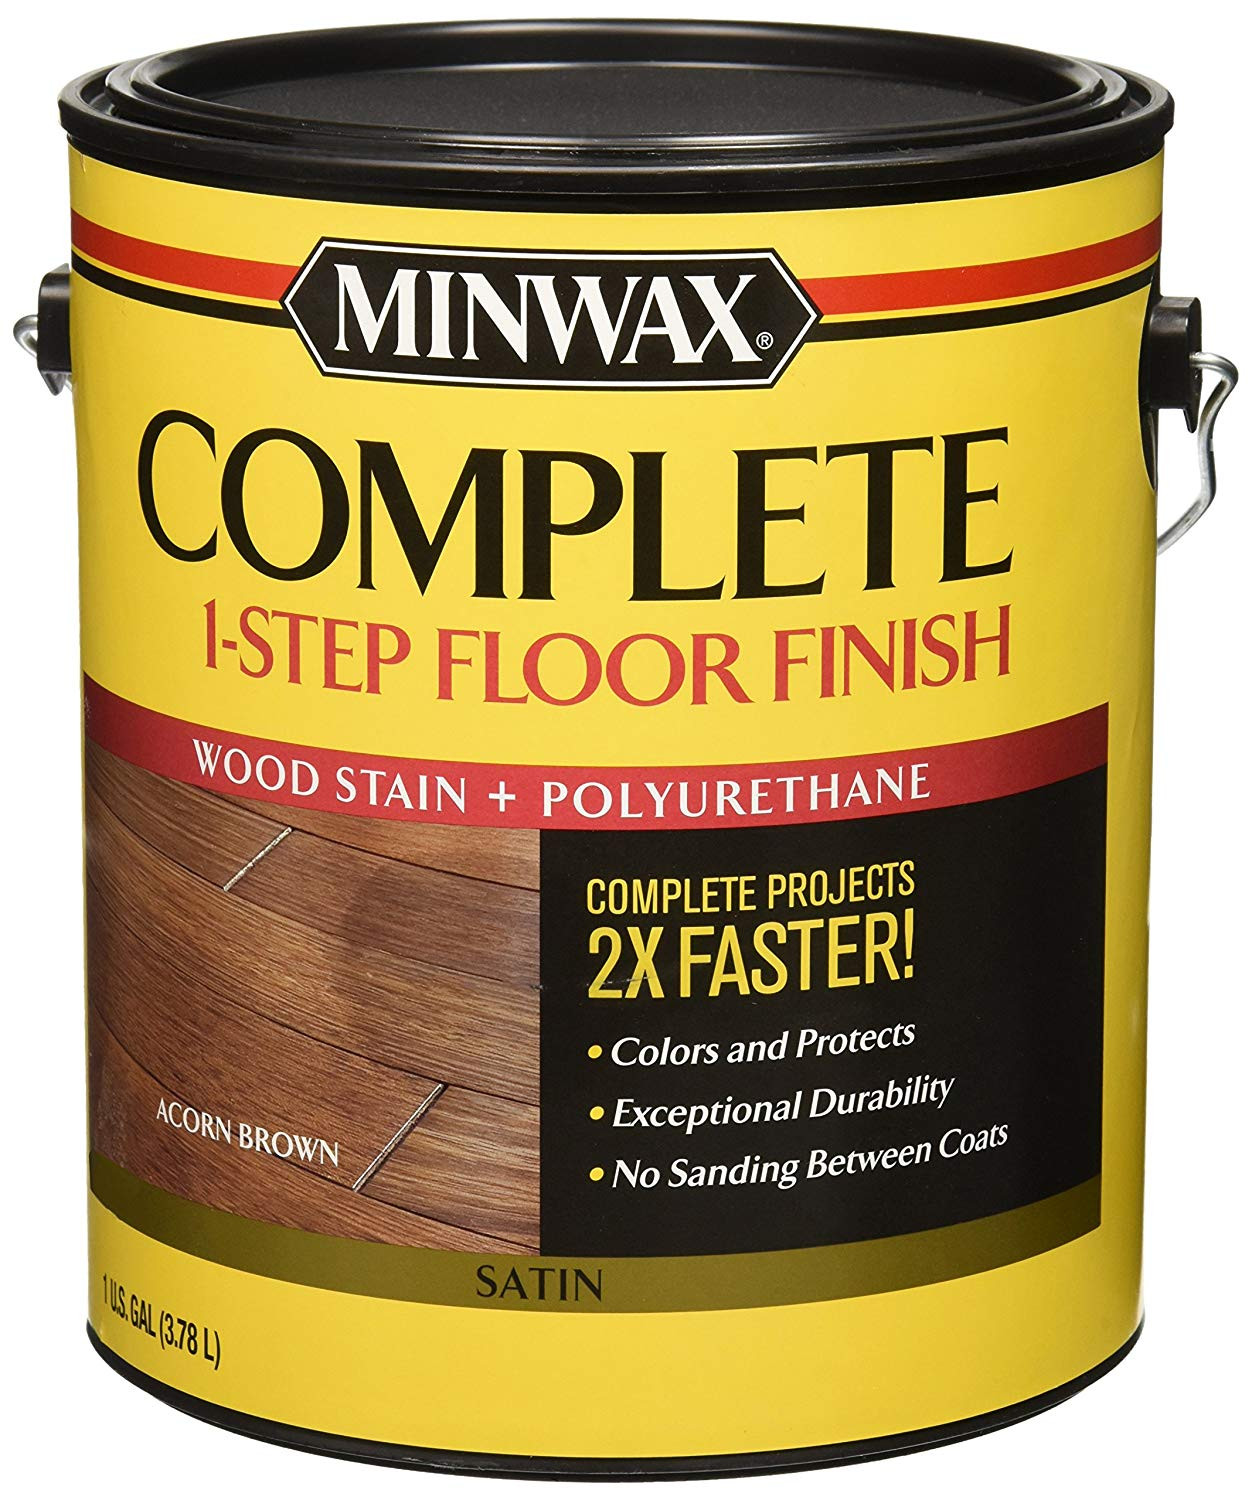 Hardwood Floor Wax Reviews Of Minwax 672030000 1g Satin Acorn Brown Complete 1 Step Floor Finish Intended for Minwax 672030000 1g Satin Acorn Brown Complete 1 Step Floor Finish Amazon Com